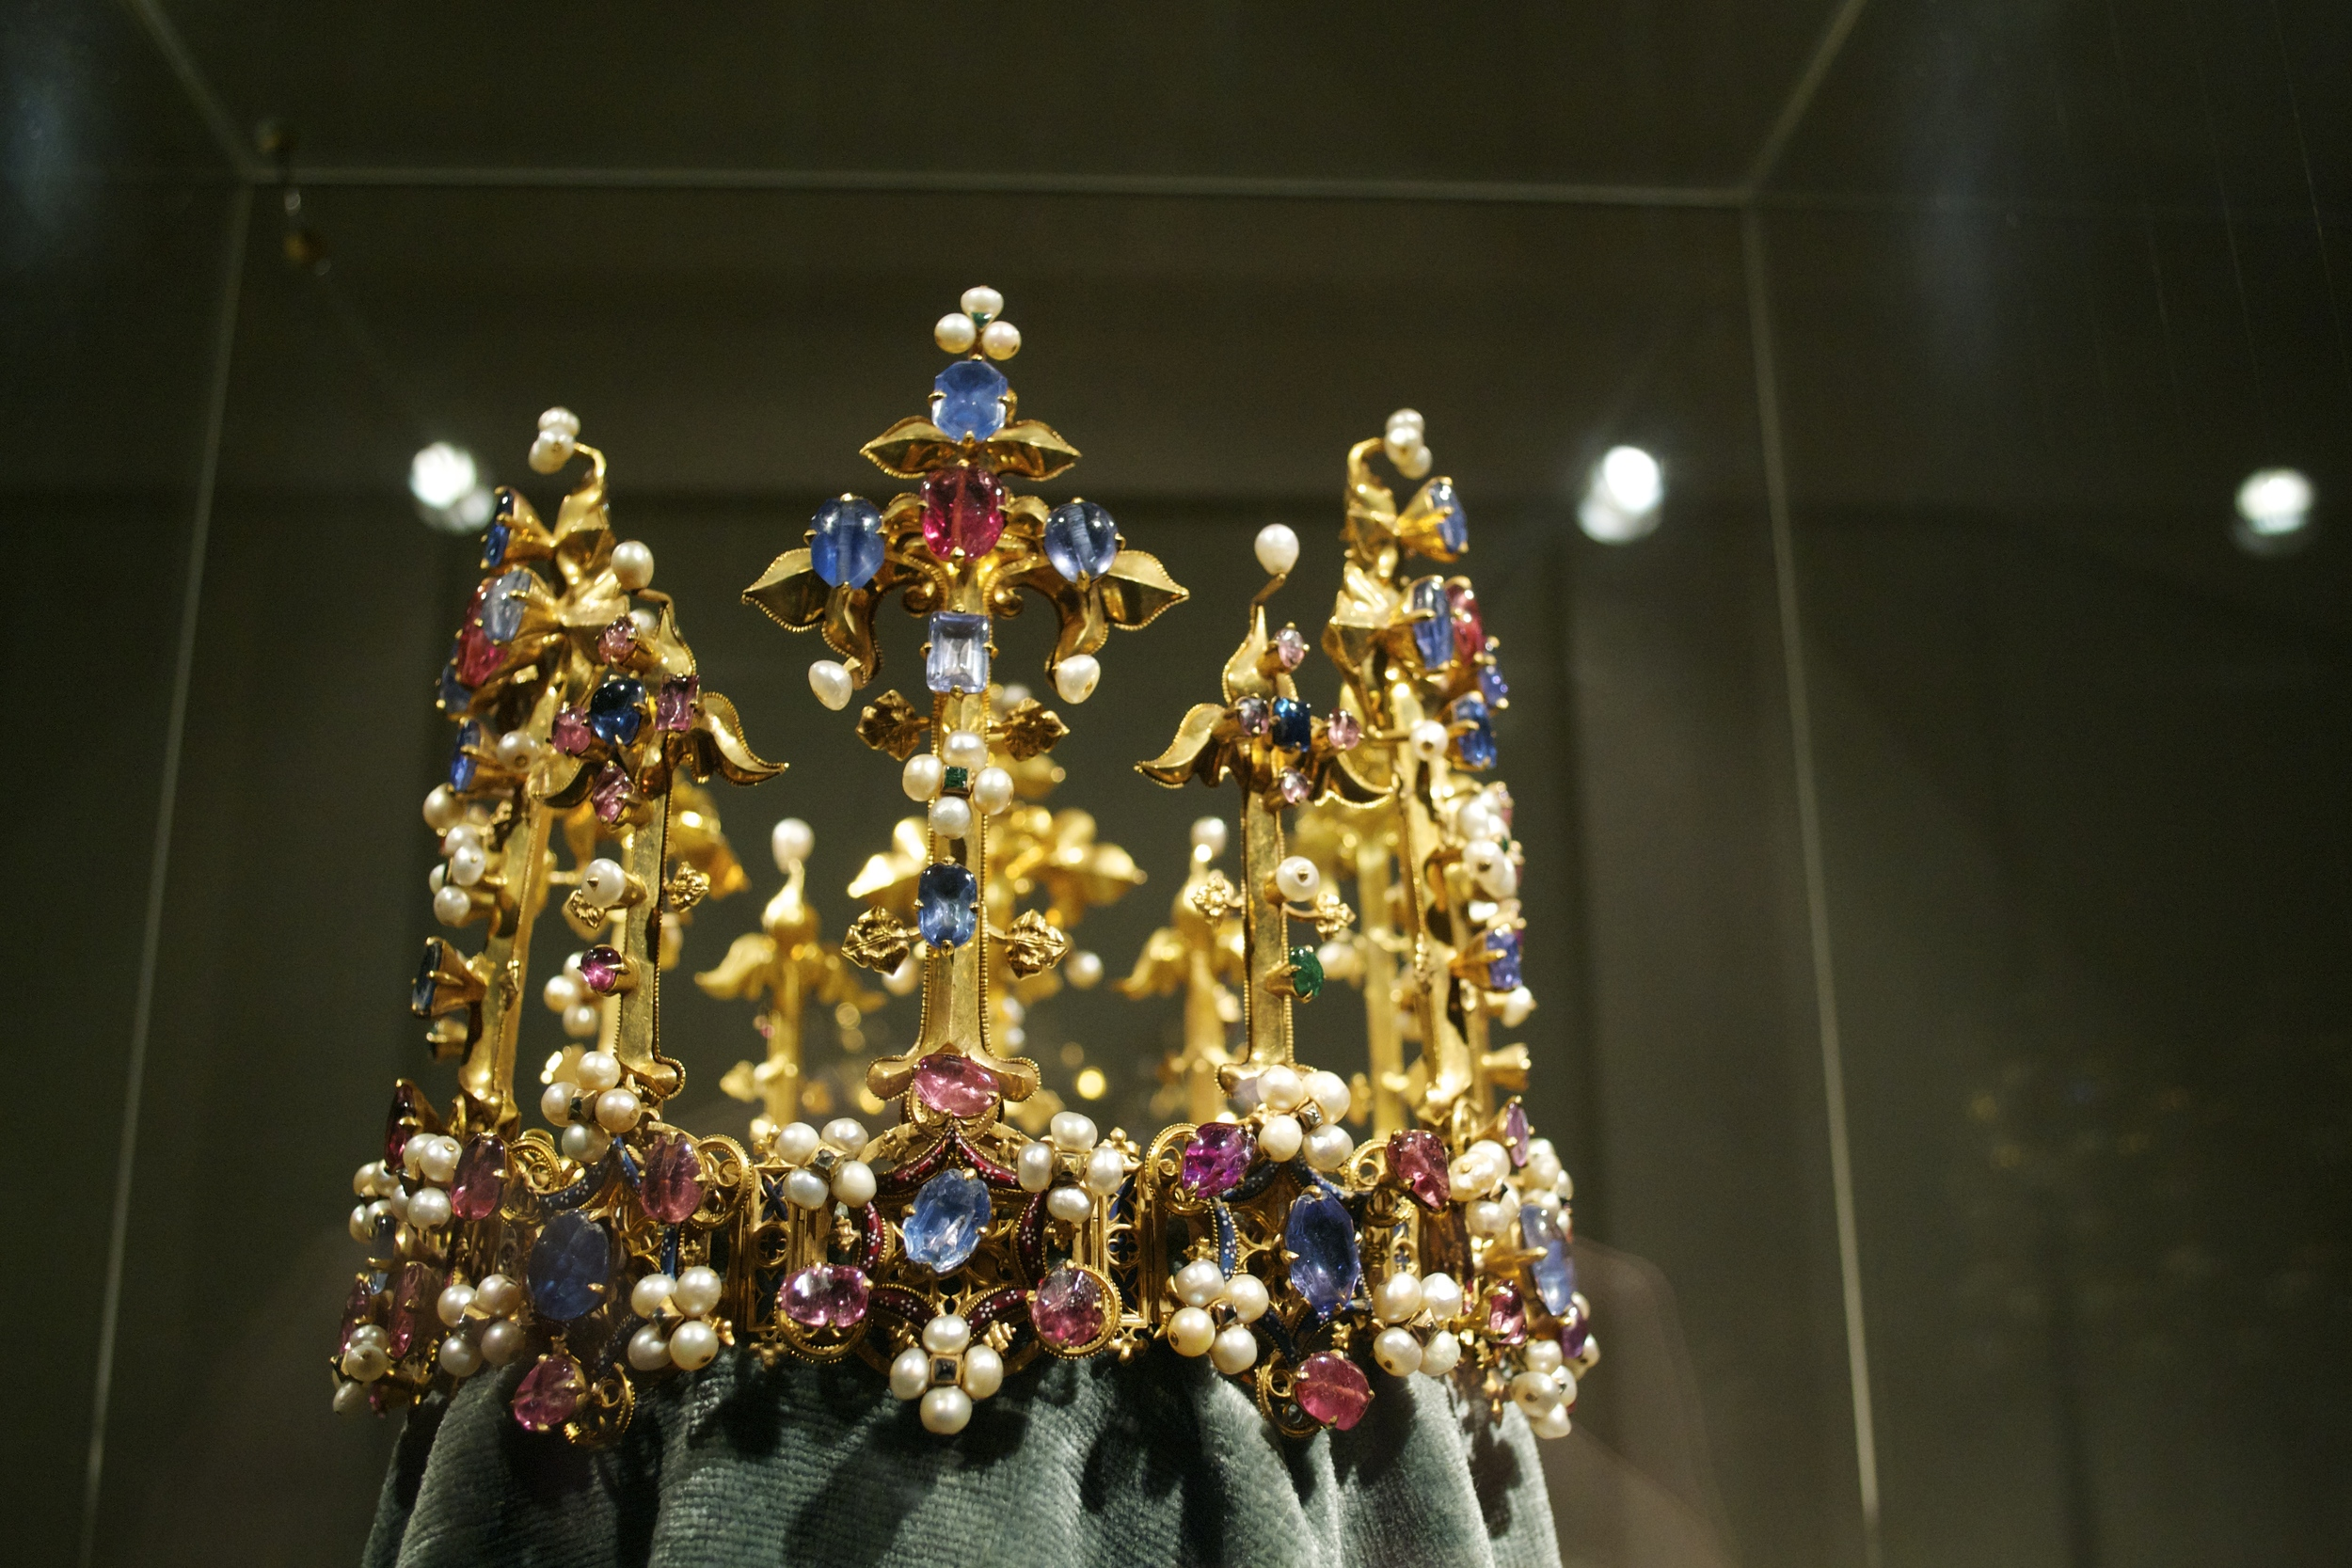 We also paid a visit to the Residenz's Schatzkammer (Treasury). If you like shiny things, it's a must-see.